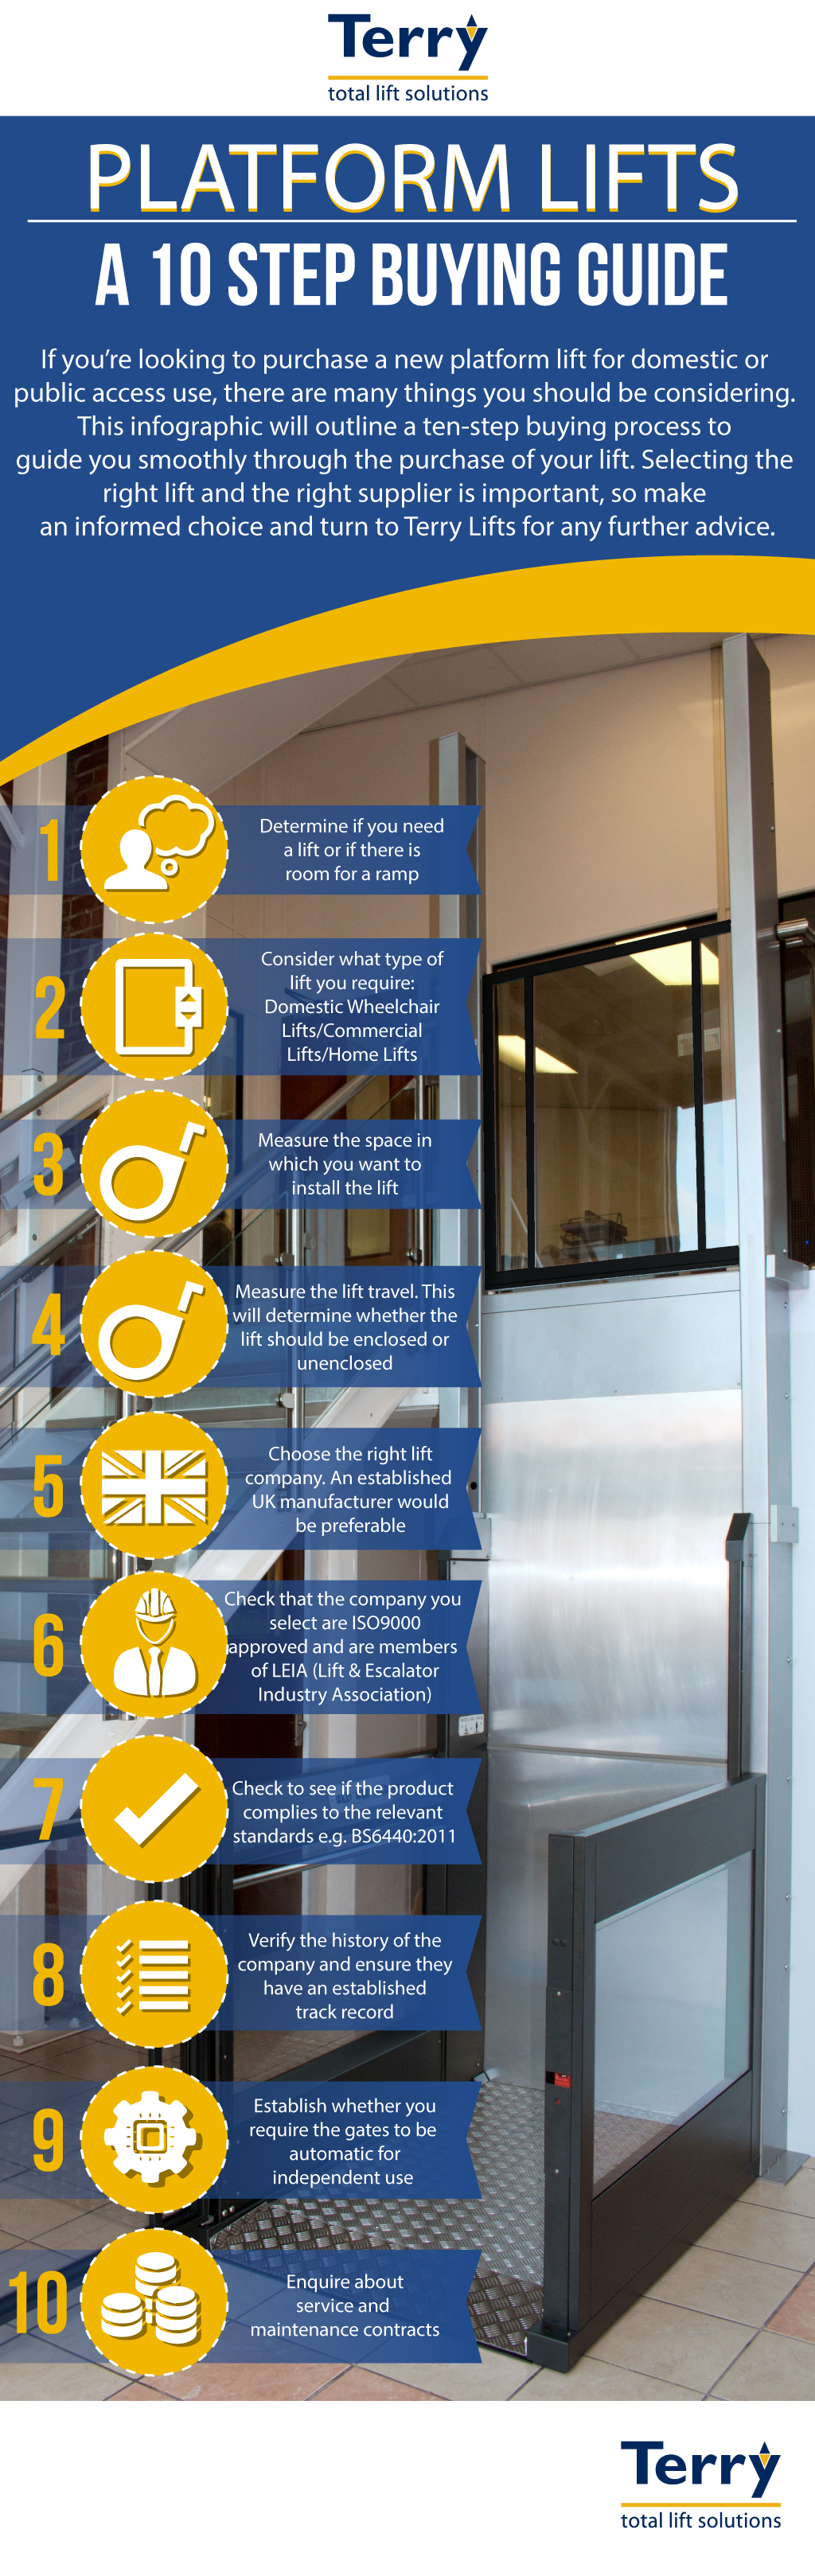 Infographic: A 10 Step Buying Guide for Platform Lifts